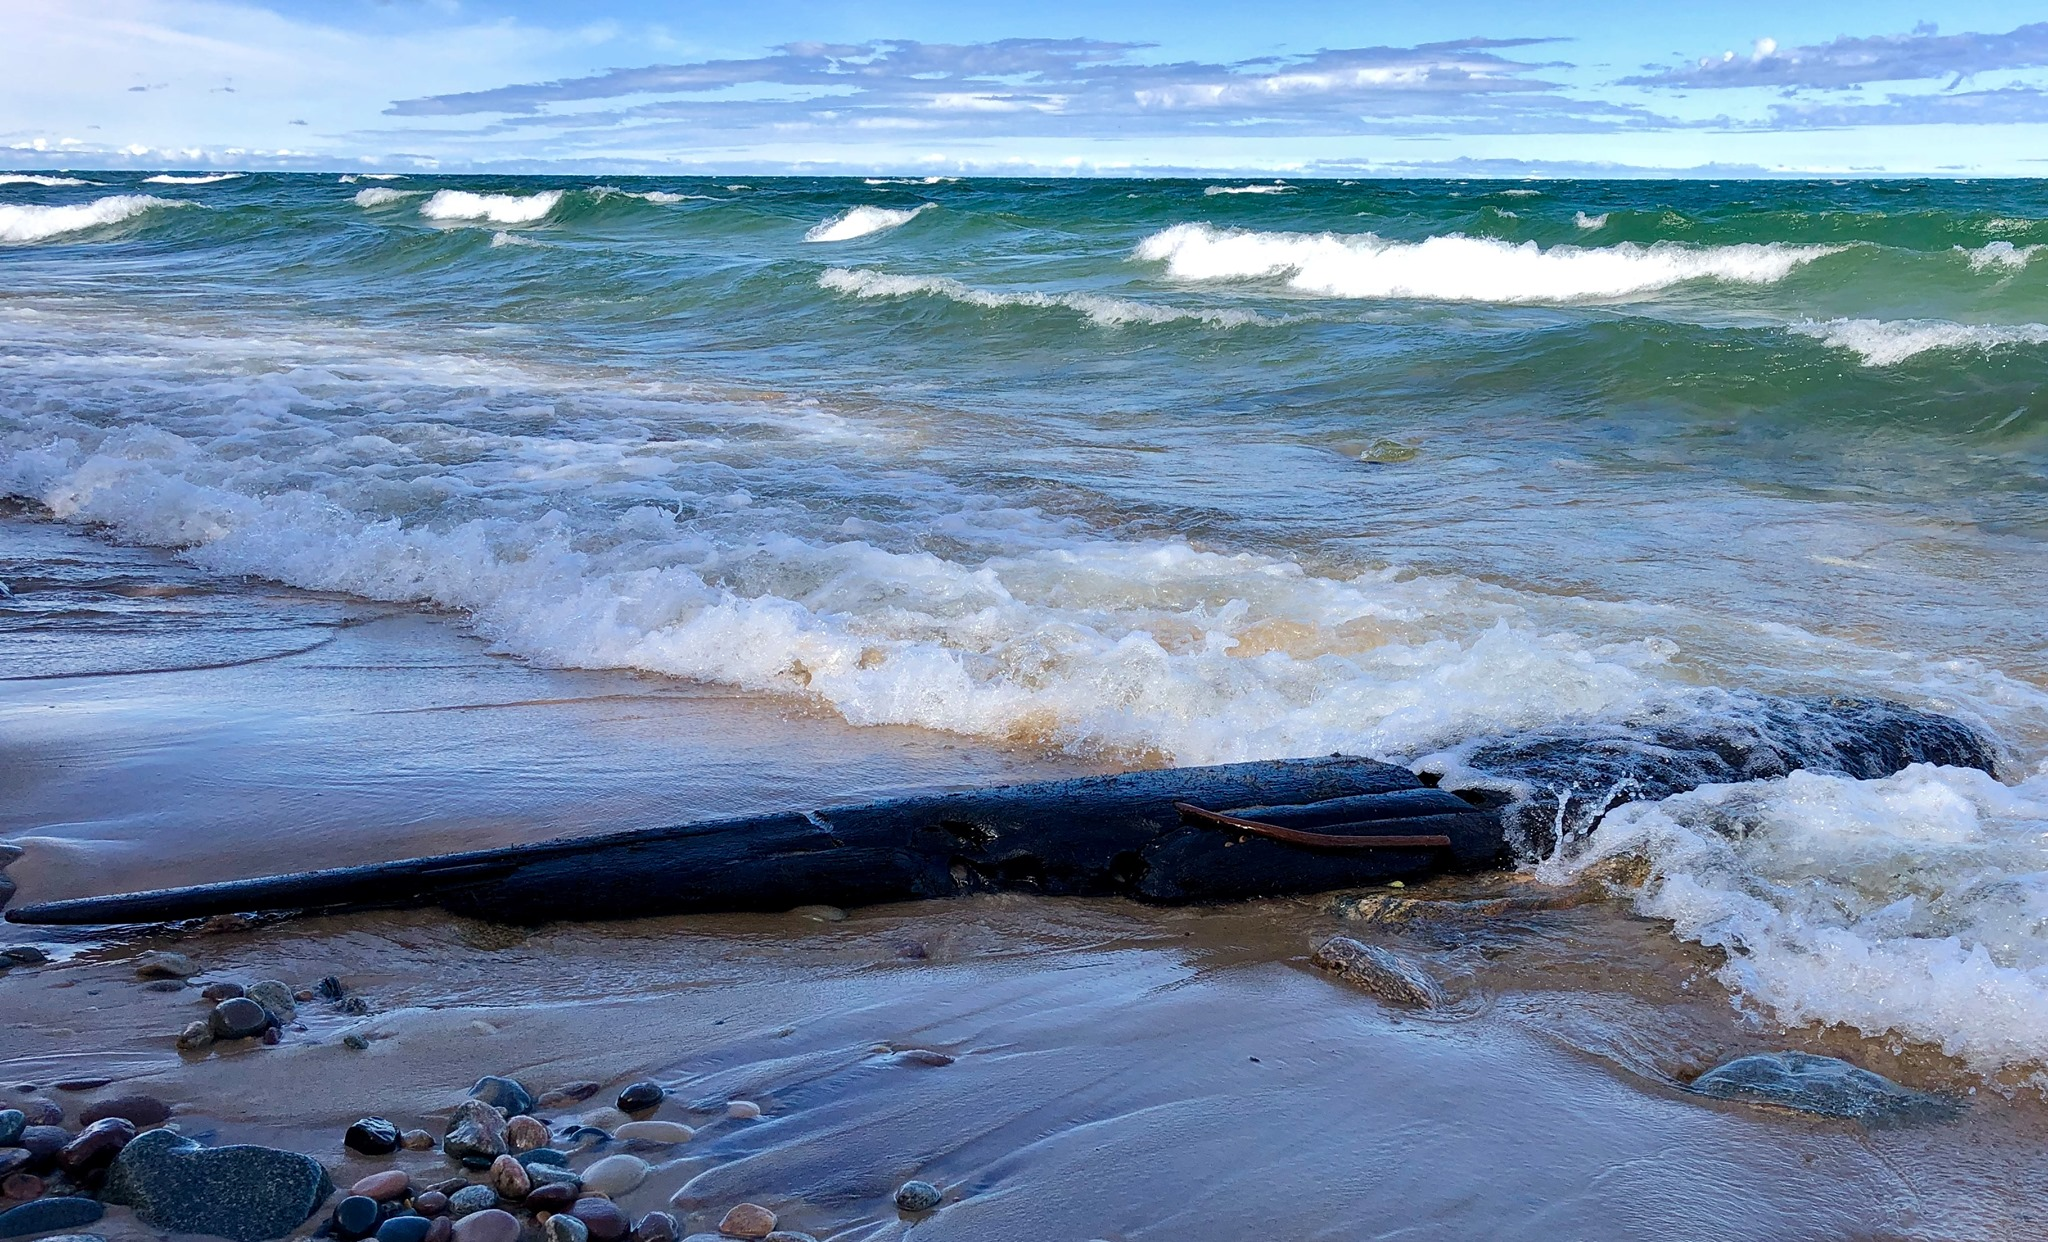 Shipwreck piece from Lake Superior washes up on Pictured Rocks beach